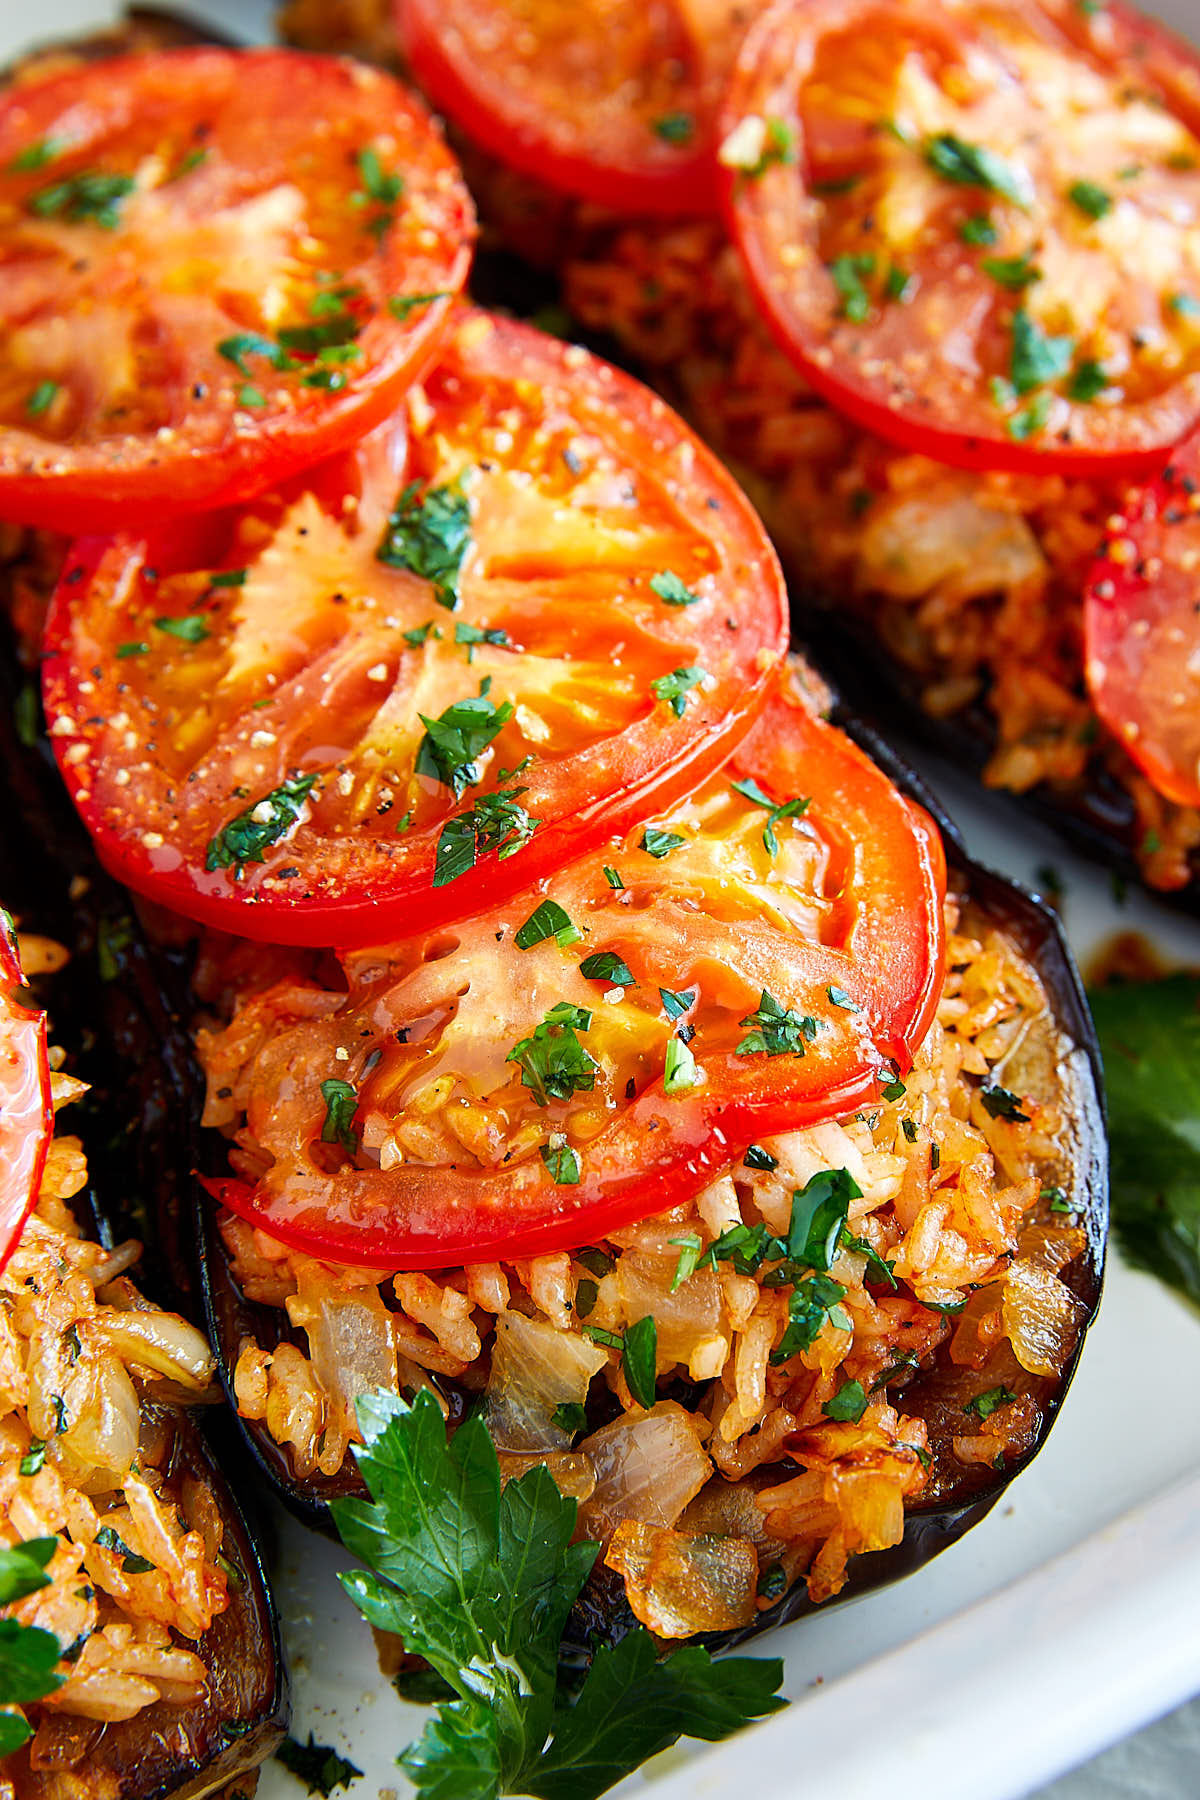 Fried Eggplant with Rice and Tomatoes | ifoodblogger.com #eggplant #friedeggplant #healthyrecipes #vegan #vegetarian #lowcarb